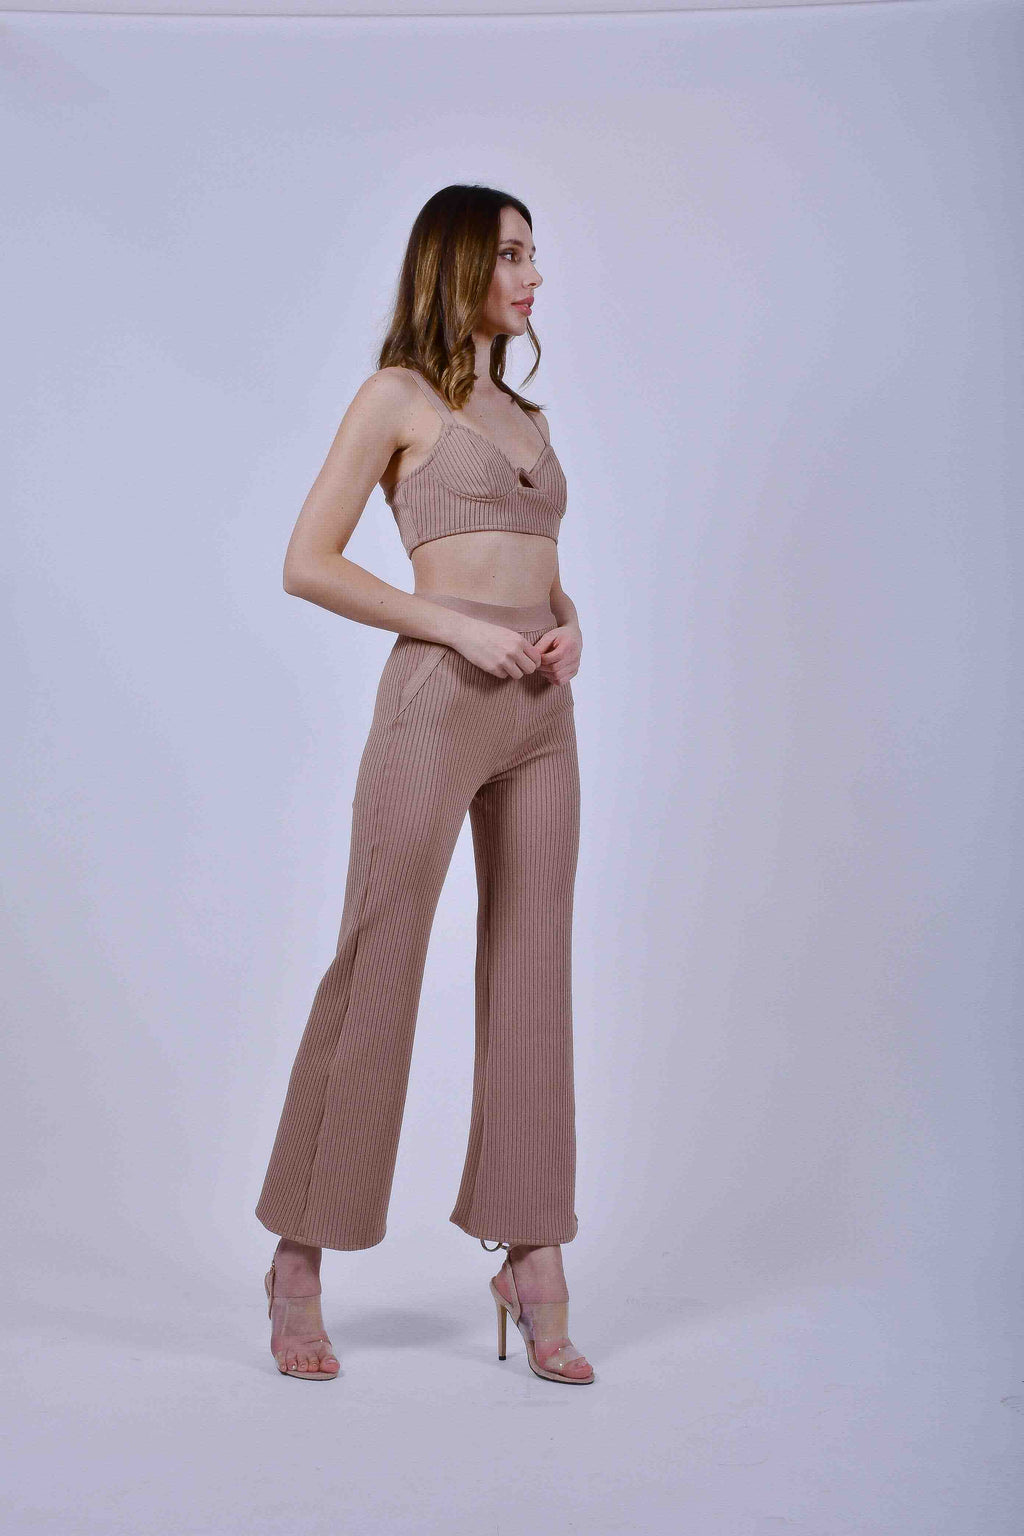 Tan Crop Top and Pants Set